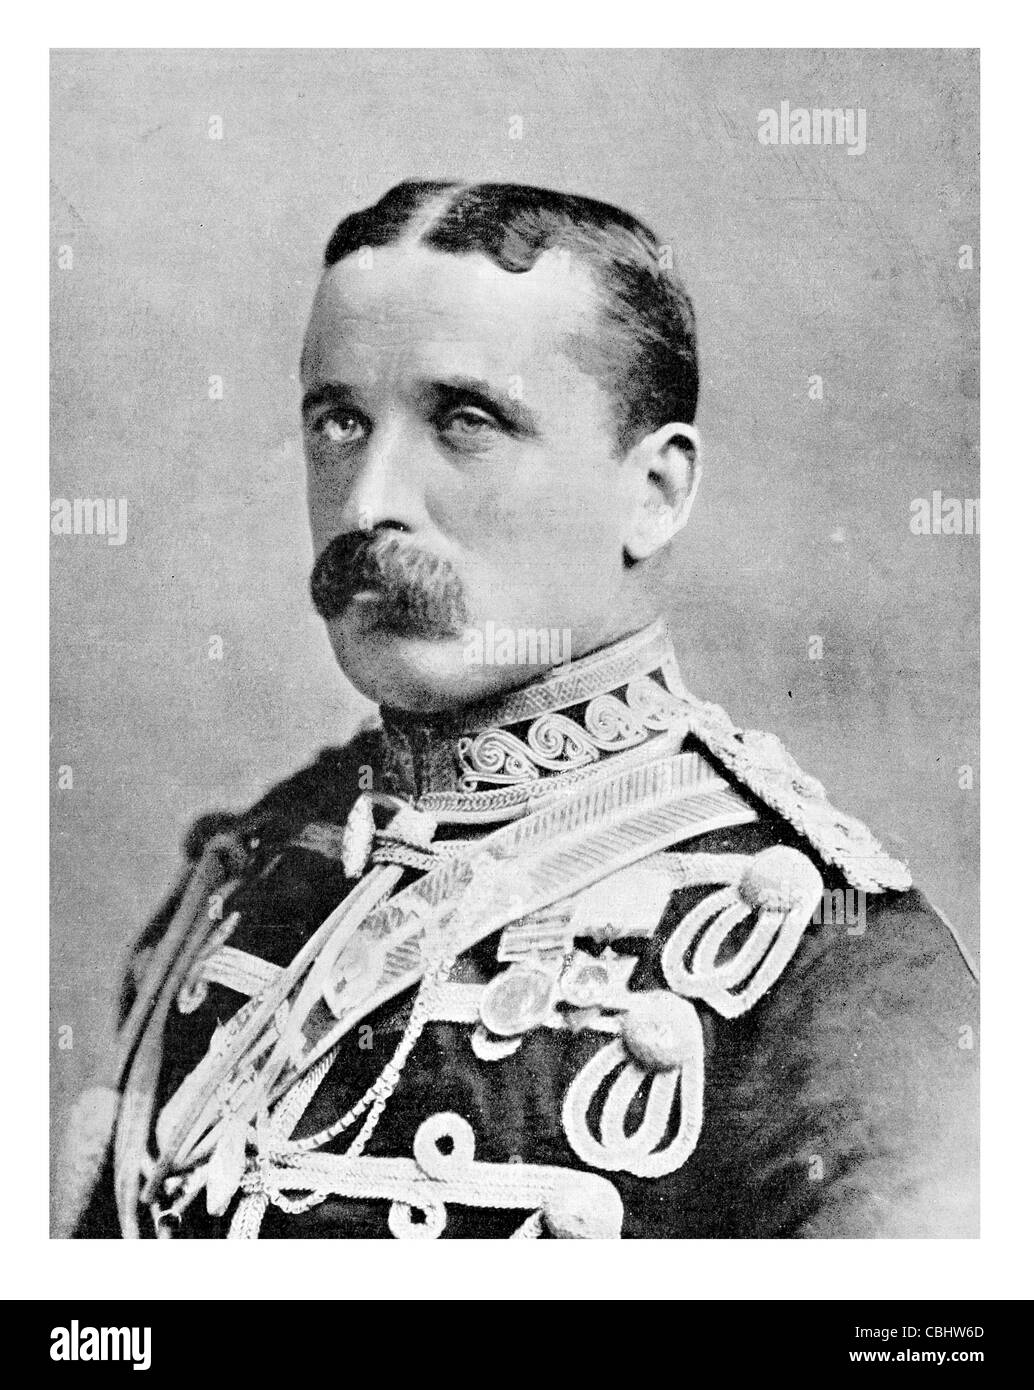 advance Army Lieut General Field Marshal Frederick Sleigh Roberts 1st Earl 1832 1914 British soldier commander in - Stock Image